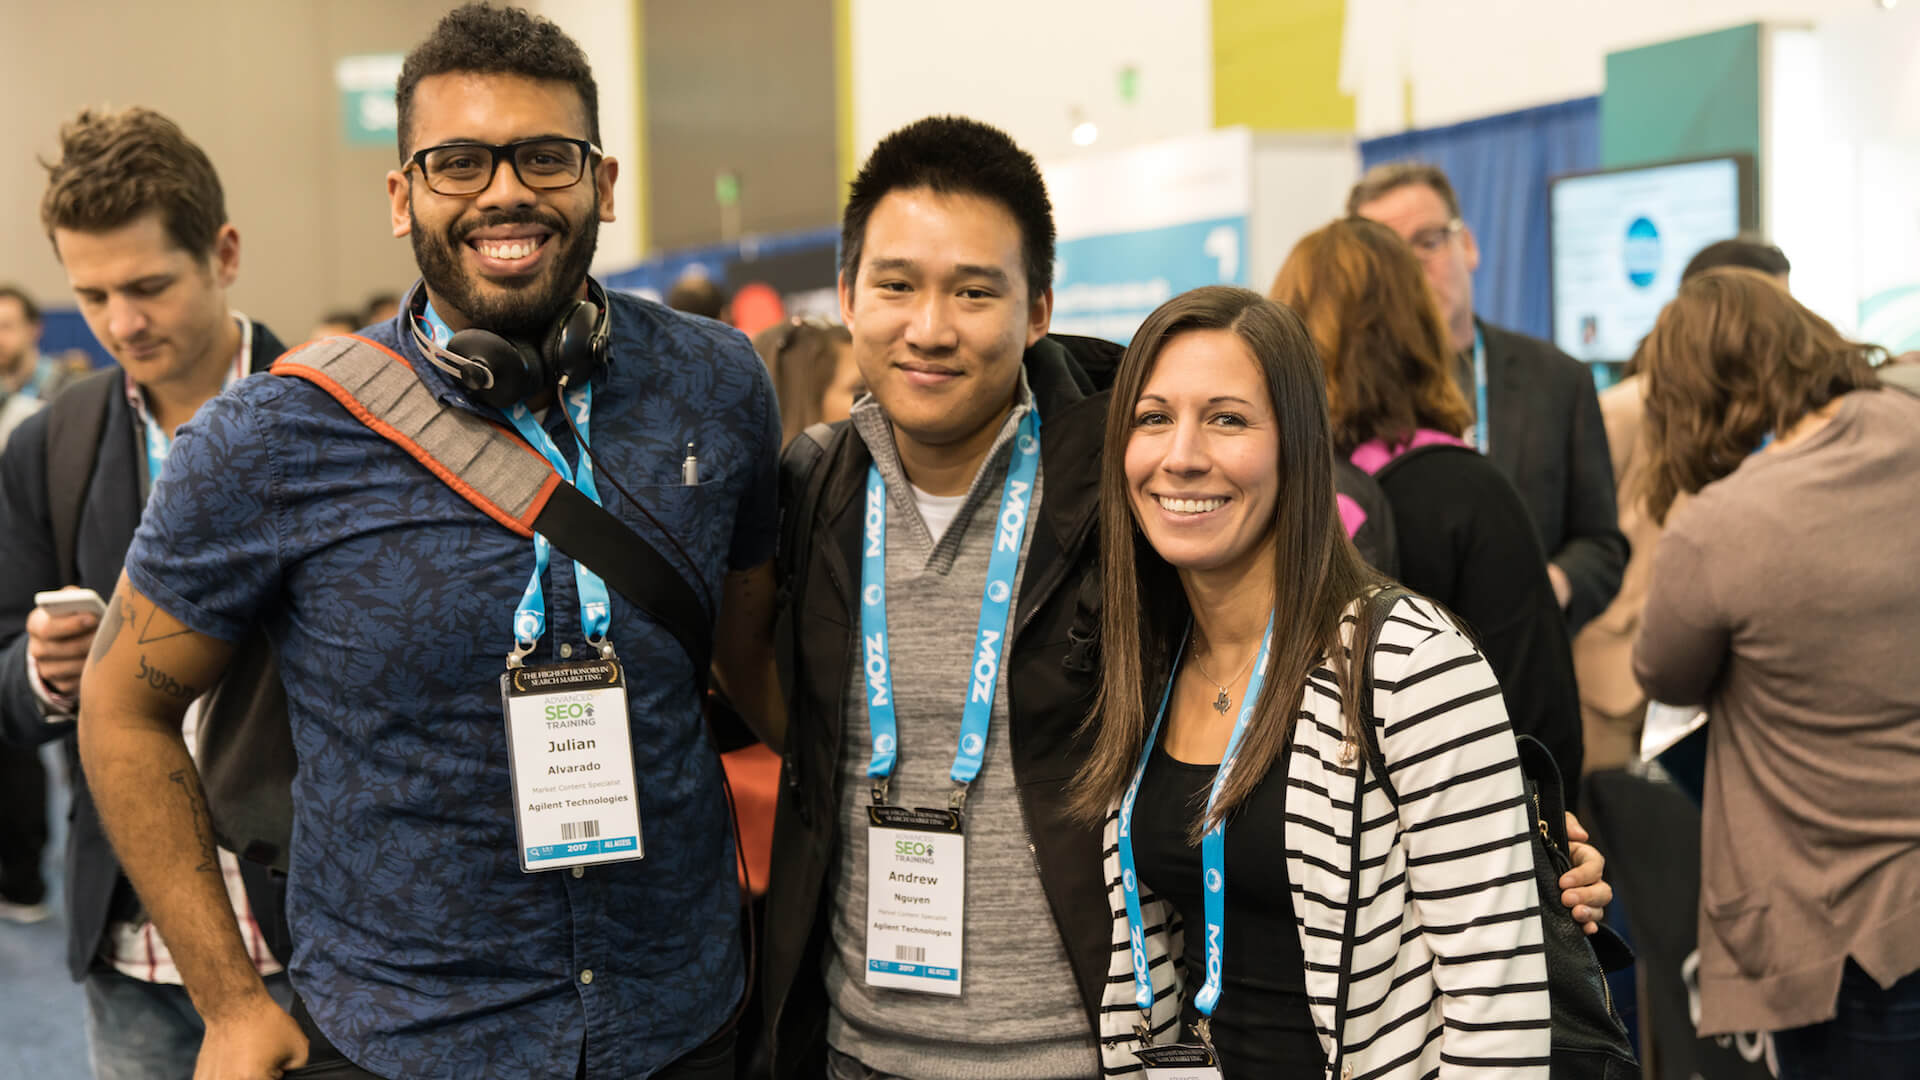 Search marketers save $400 on SMX East until this Saturday!